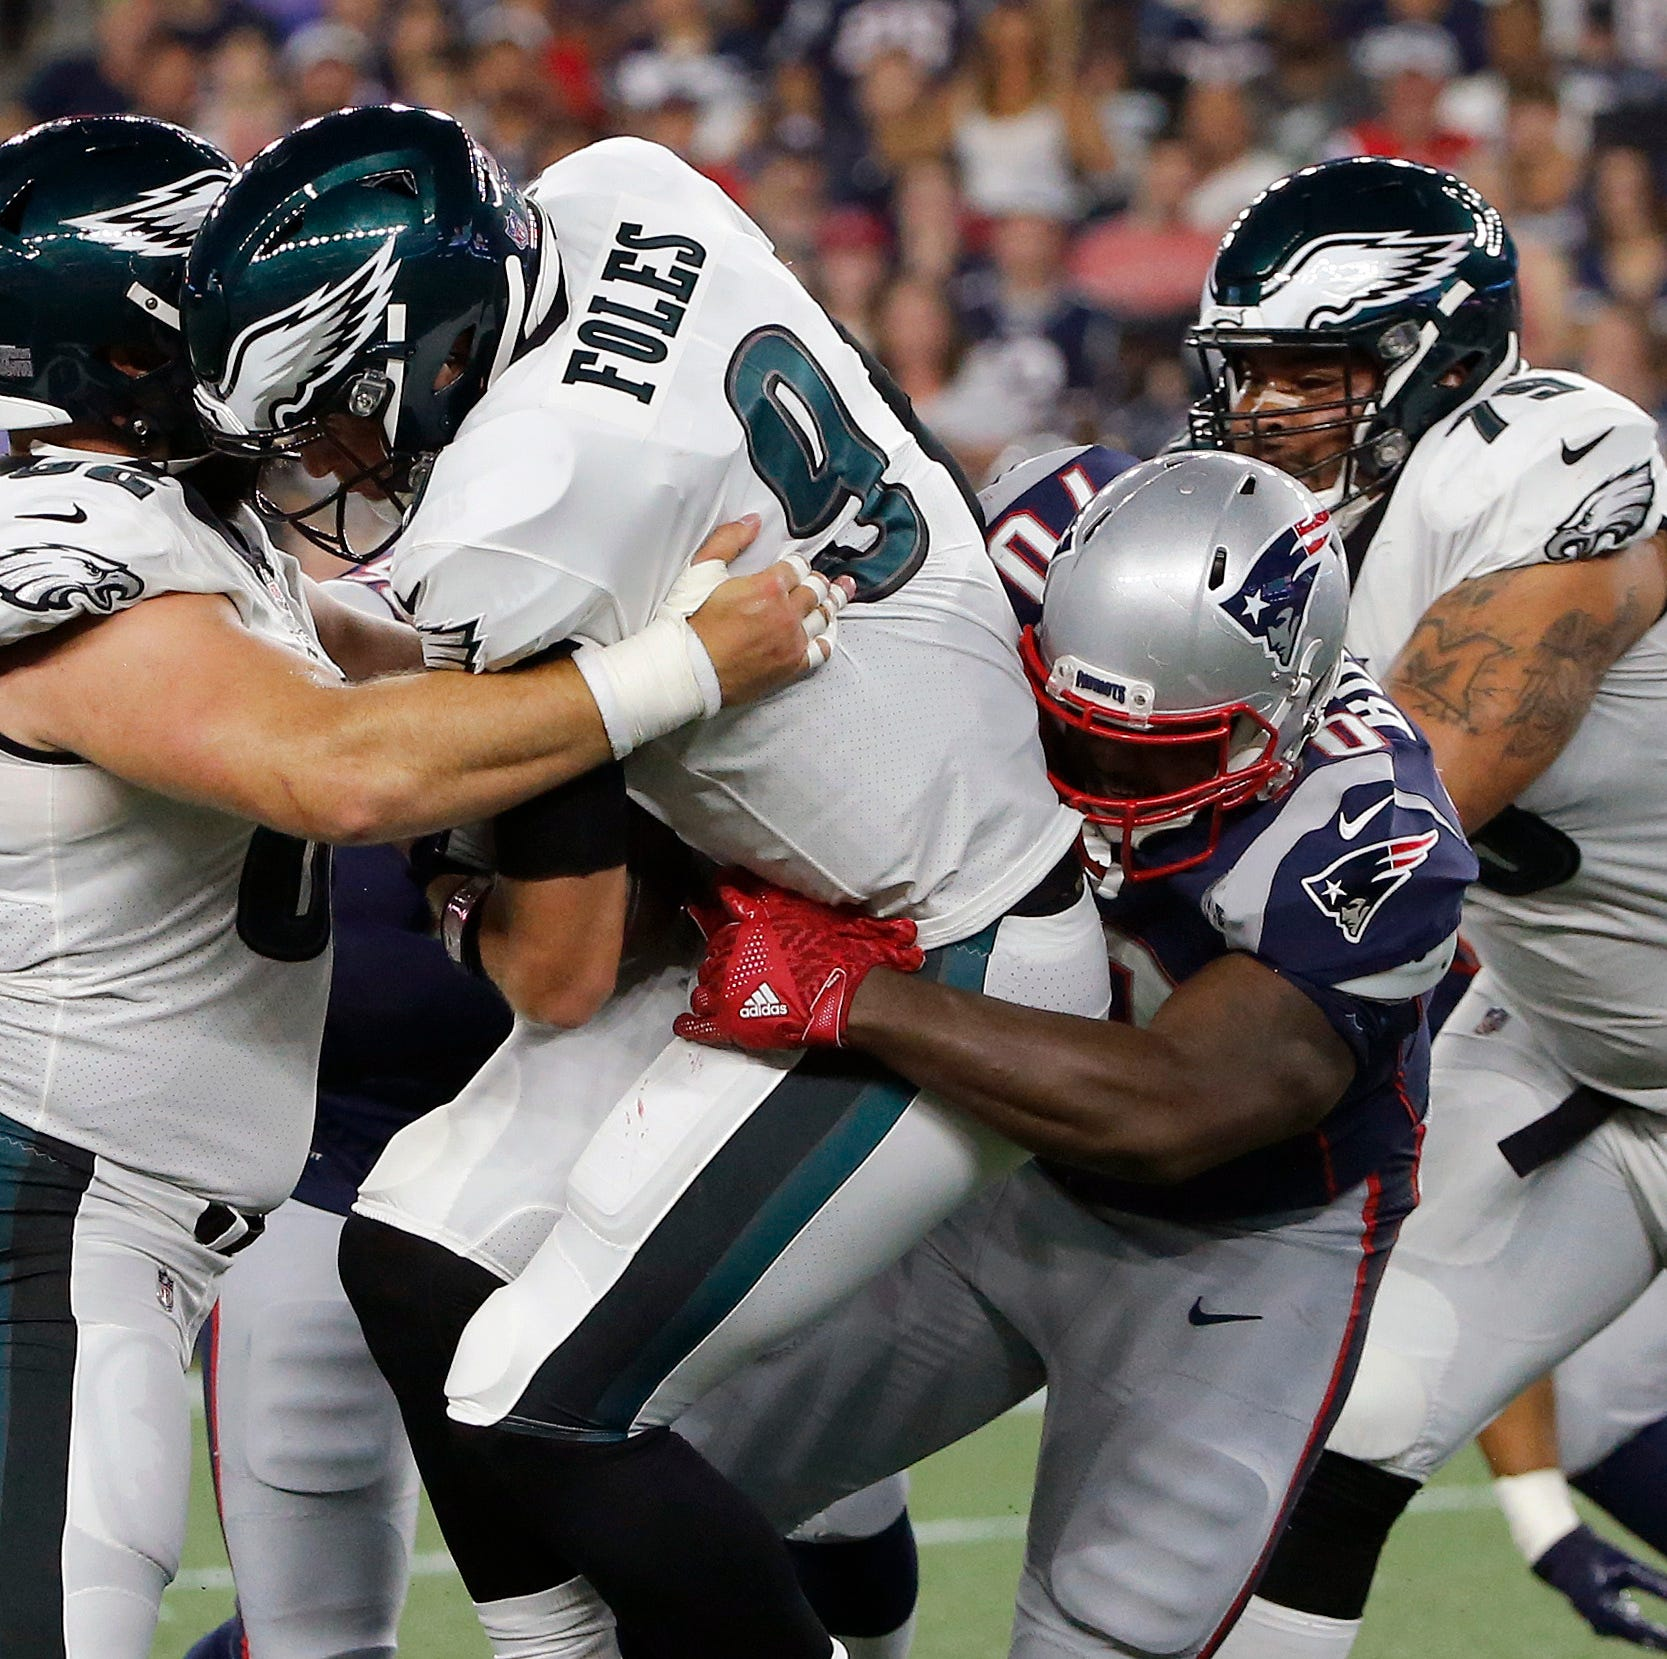 Eagles' Foles struggles, leaves with injury, but Sudfeld shines